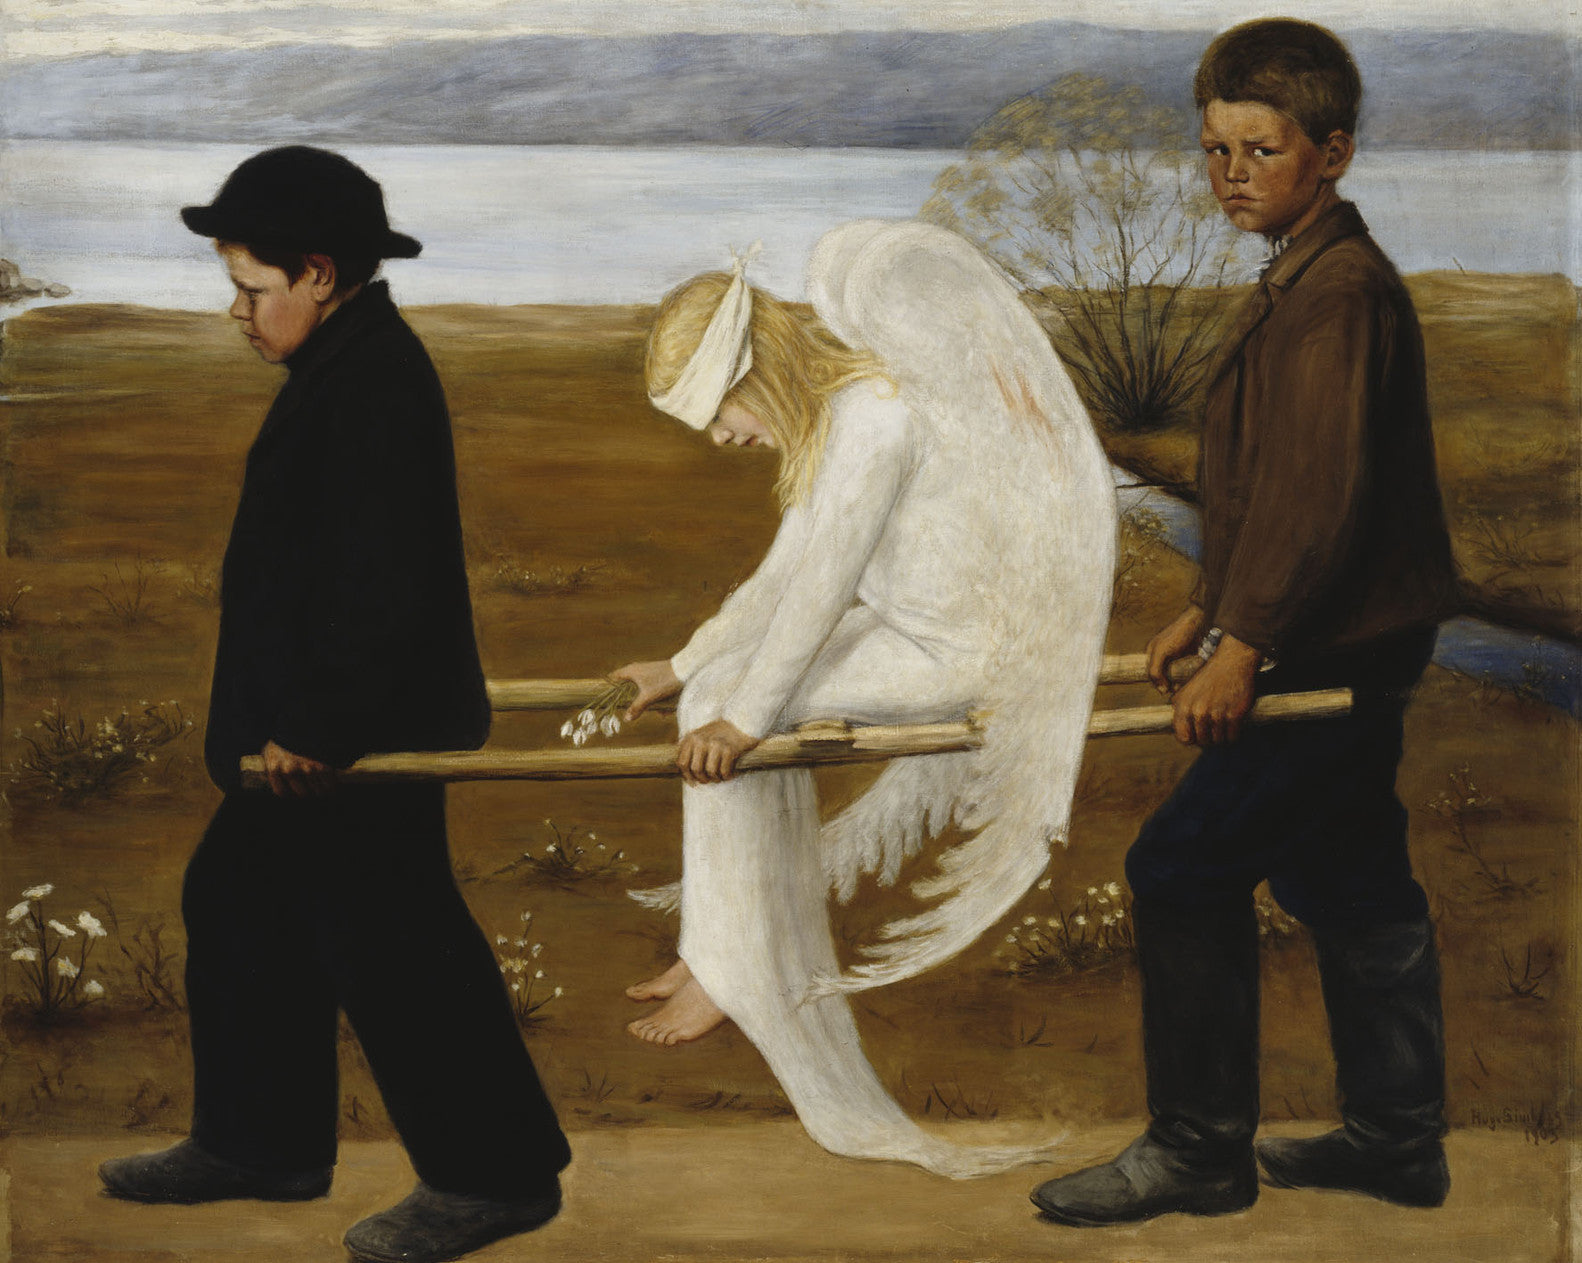 Hugo Simberg, The Wounded Angel, 1903